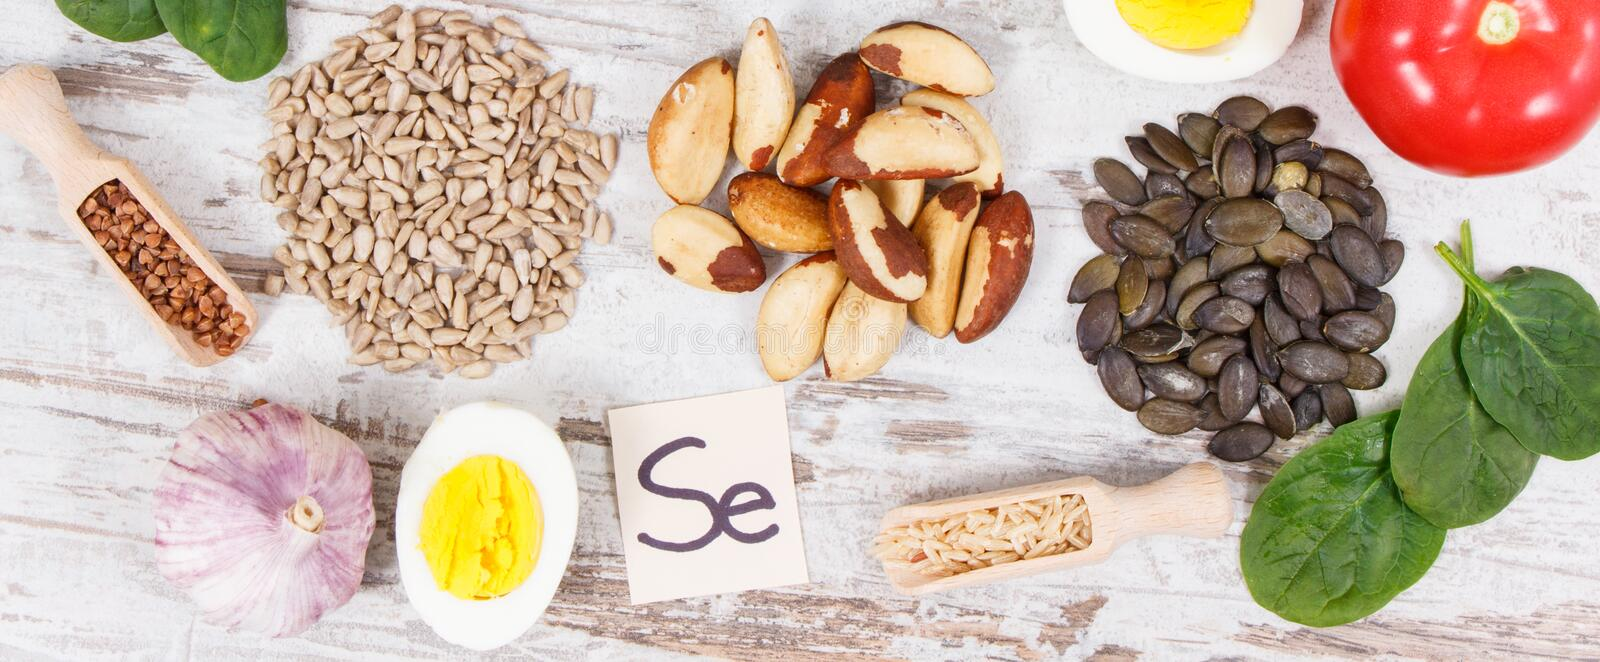 Ingredients or products as source selenium, vitamins, minerals and dietary fiber. Natural ingredients or products as source selenium, vitamins, minerals and royalty free stock photos